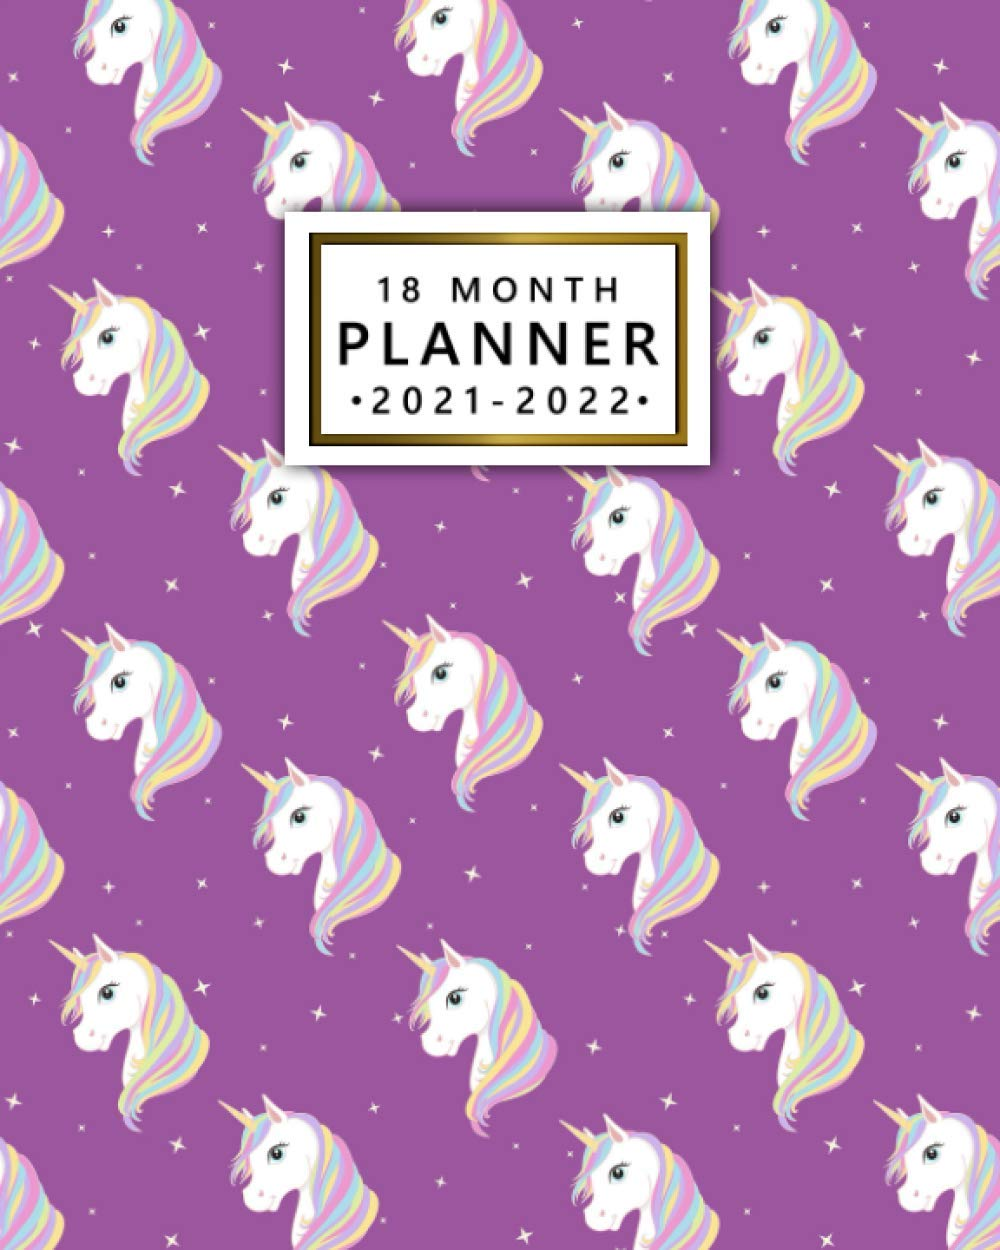 18 Month Planner 2021 2022: Magical Unicorn Weekly Organizer with